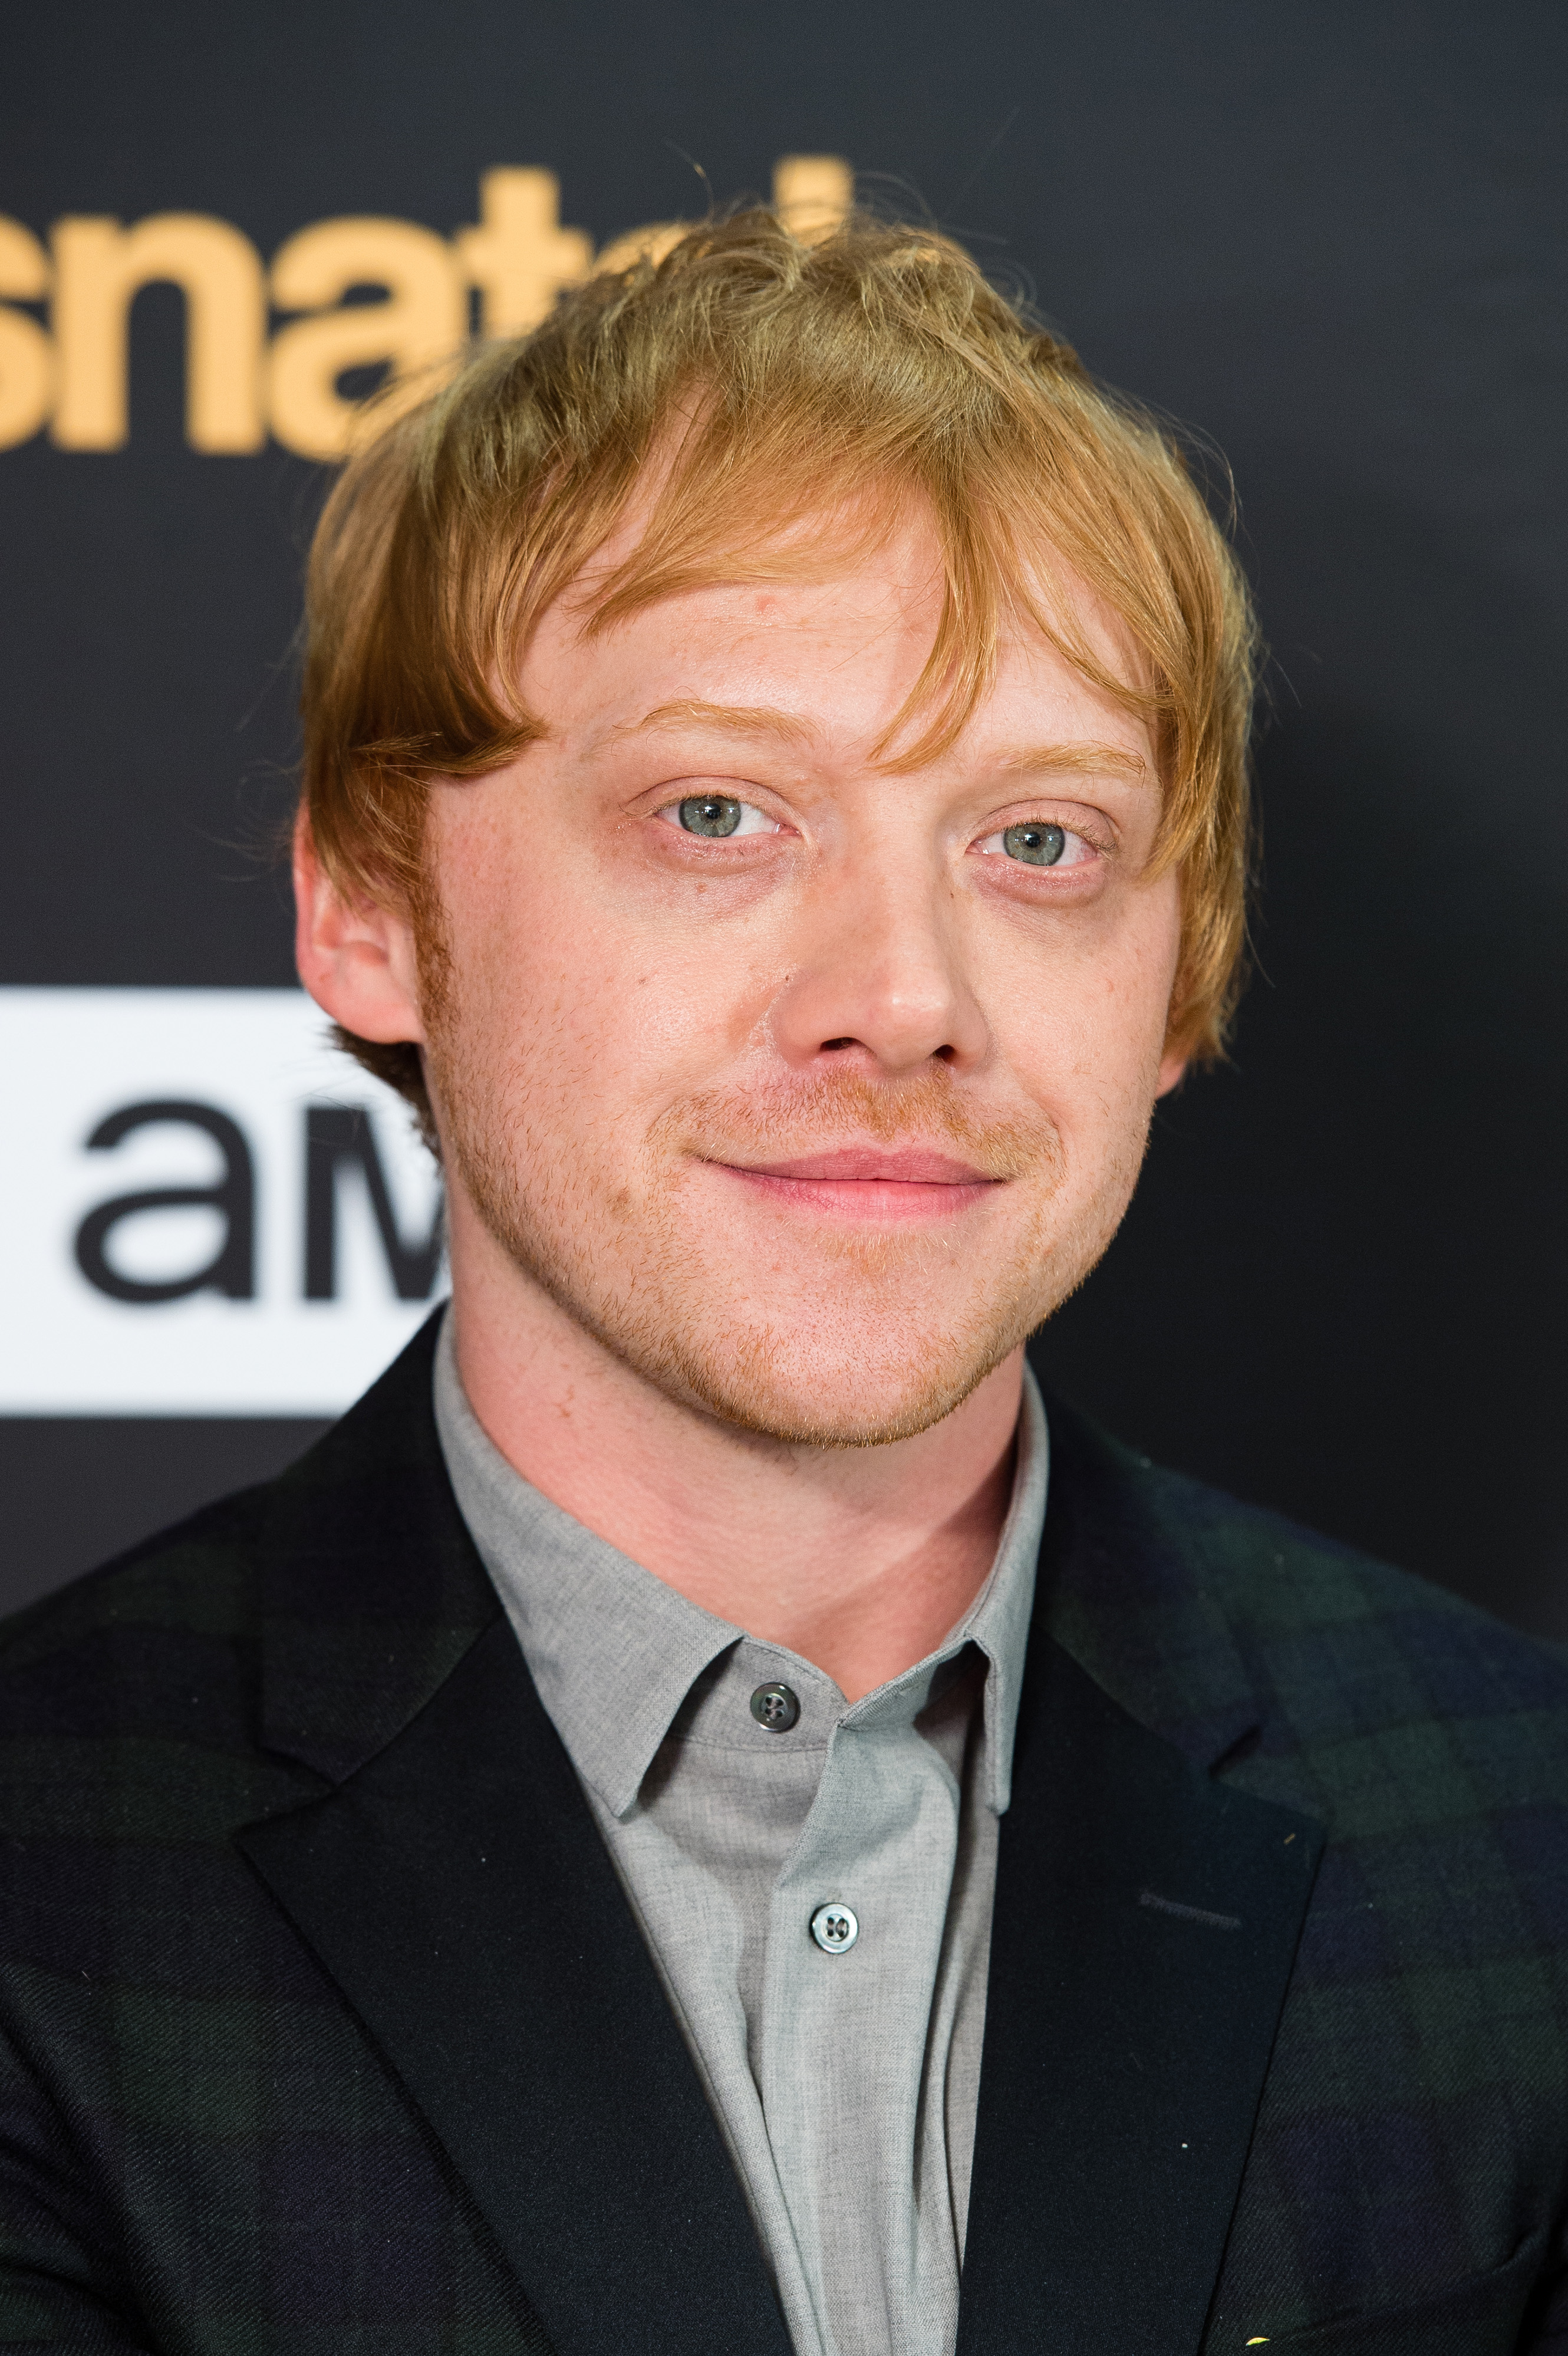 'Harry Potter' star Rupert Grint (Source: Getty Images)